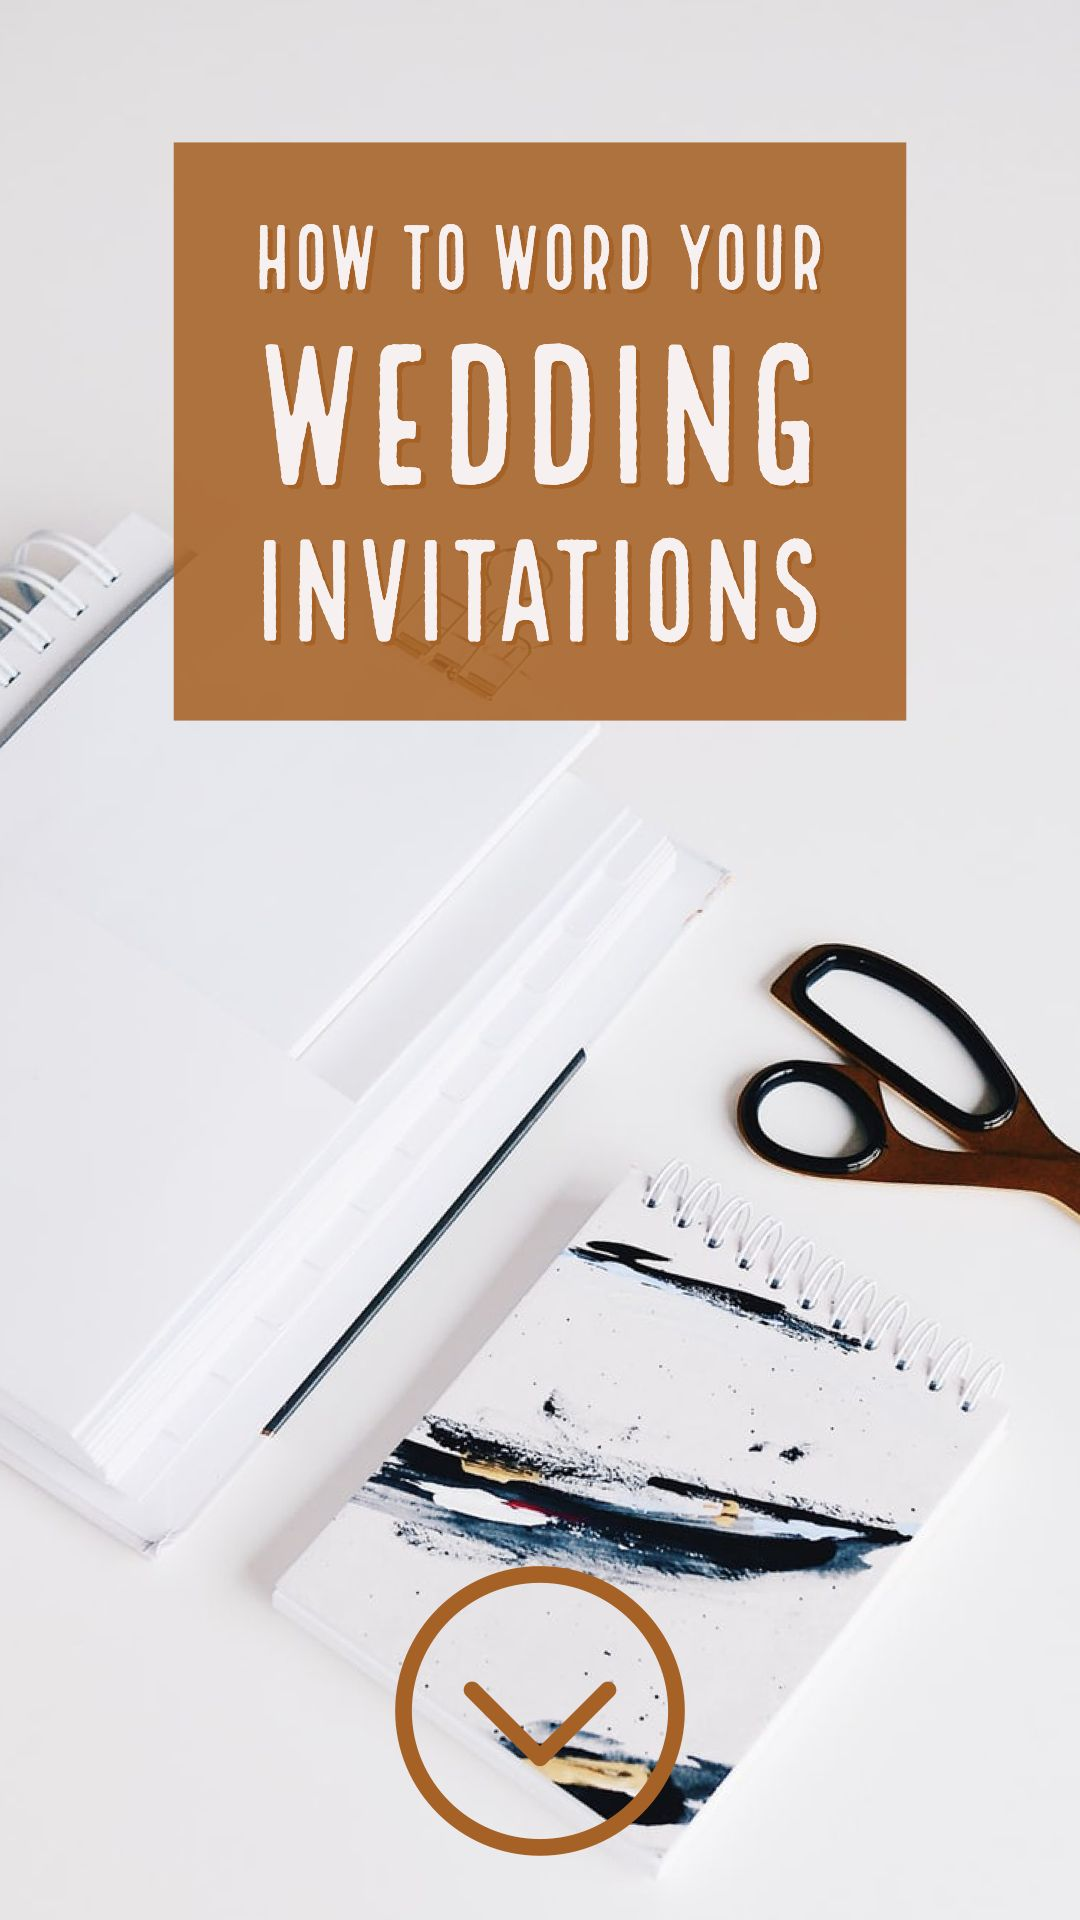 Everything you need to know to word your wedding invites! Tips on phrases, wording + more #weddinginspo #weddinginvitations #weddingday #invitationwording #weddingchicks